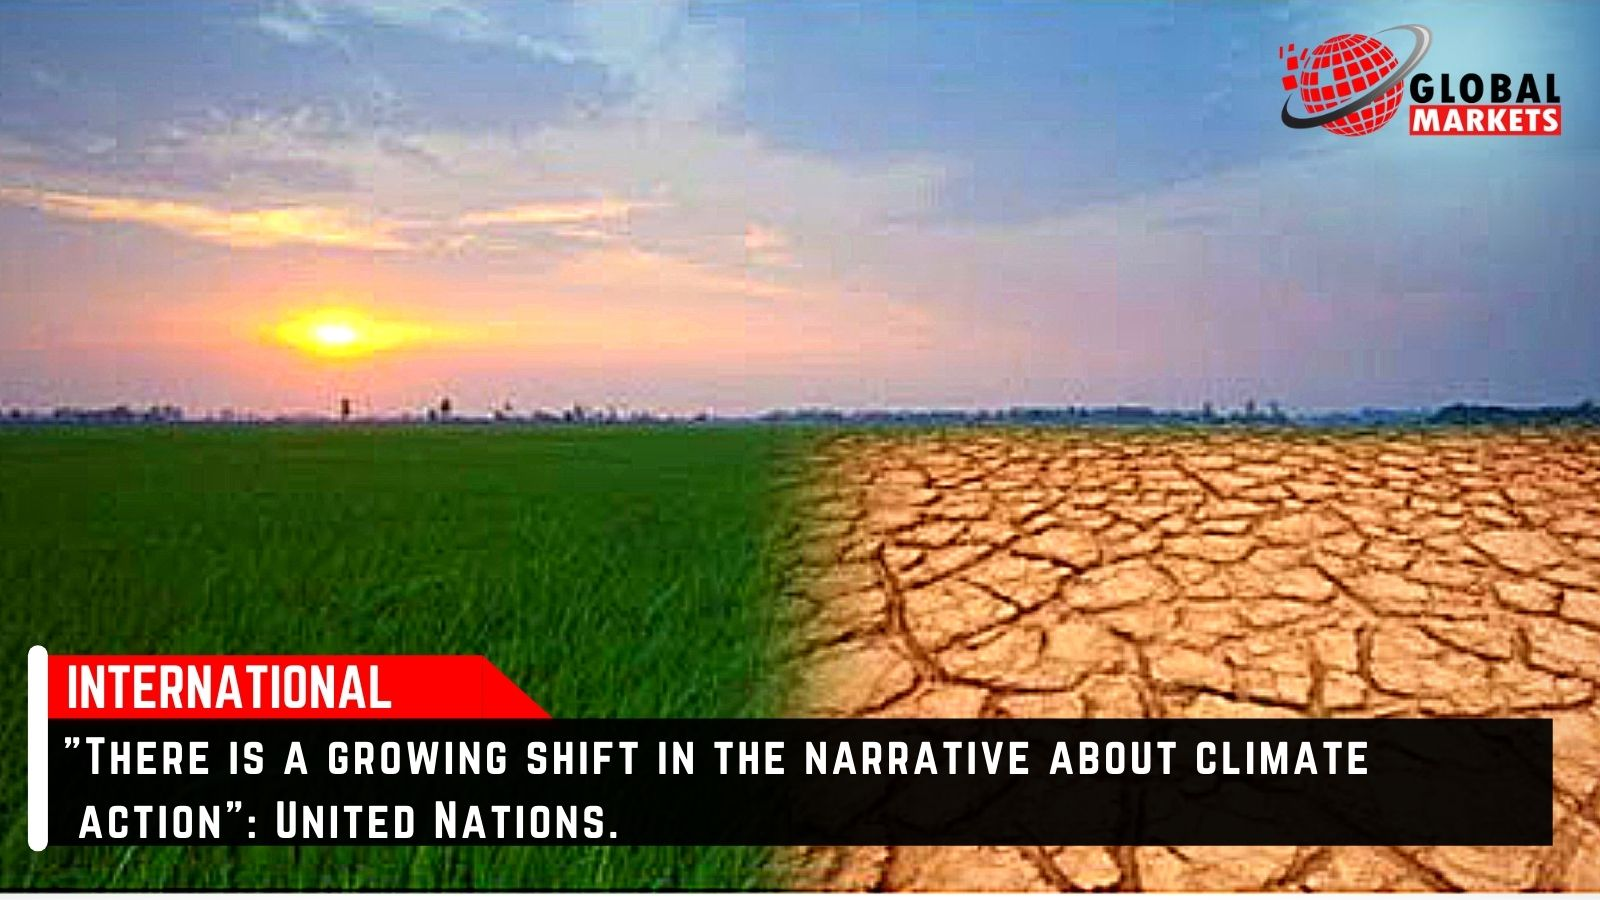 There is a shift in the narrative about climate action: United Nations.